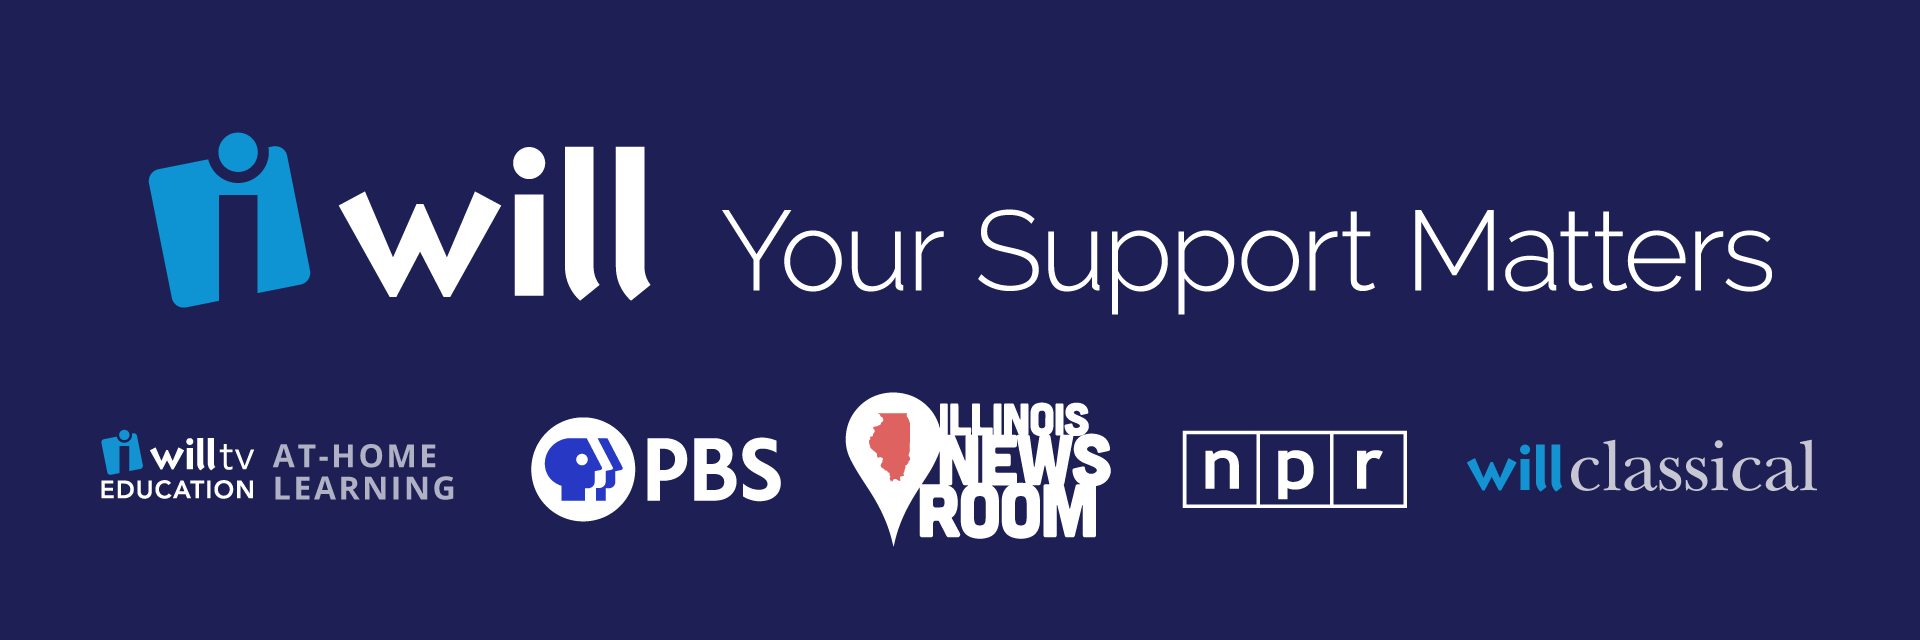 WILL is proud to bring you PBS and NPR, local news from Illinois Newsroom, access to educational programming and tools for at-home learning, and the very best in classical music. Your support makes it all possible. Your support matters.